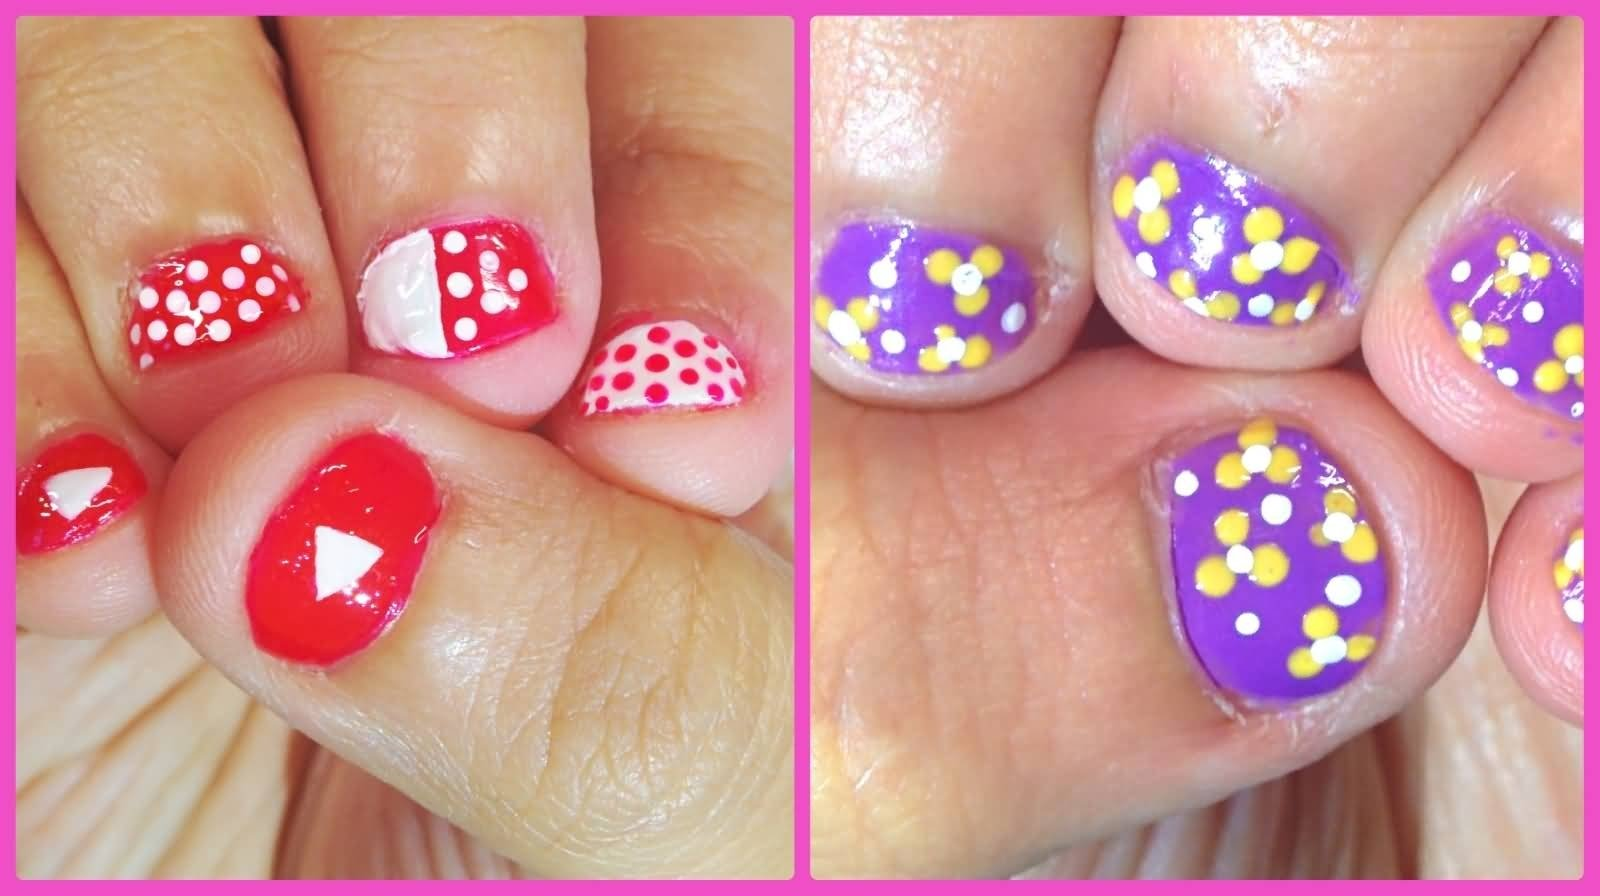 10 Nice Nail Design Ideas For Short Nails 50 most stylish short nail art design ideas 2020